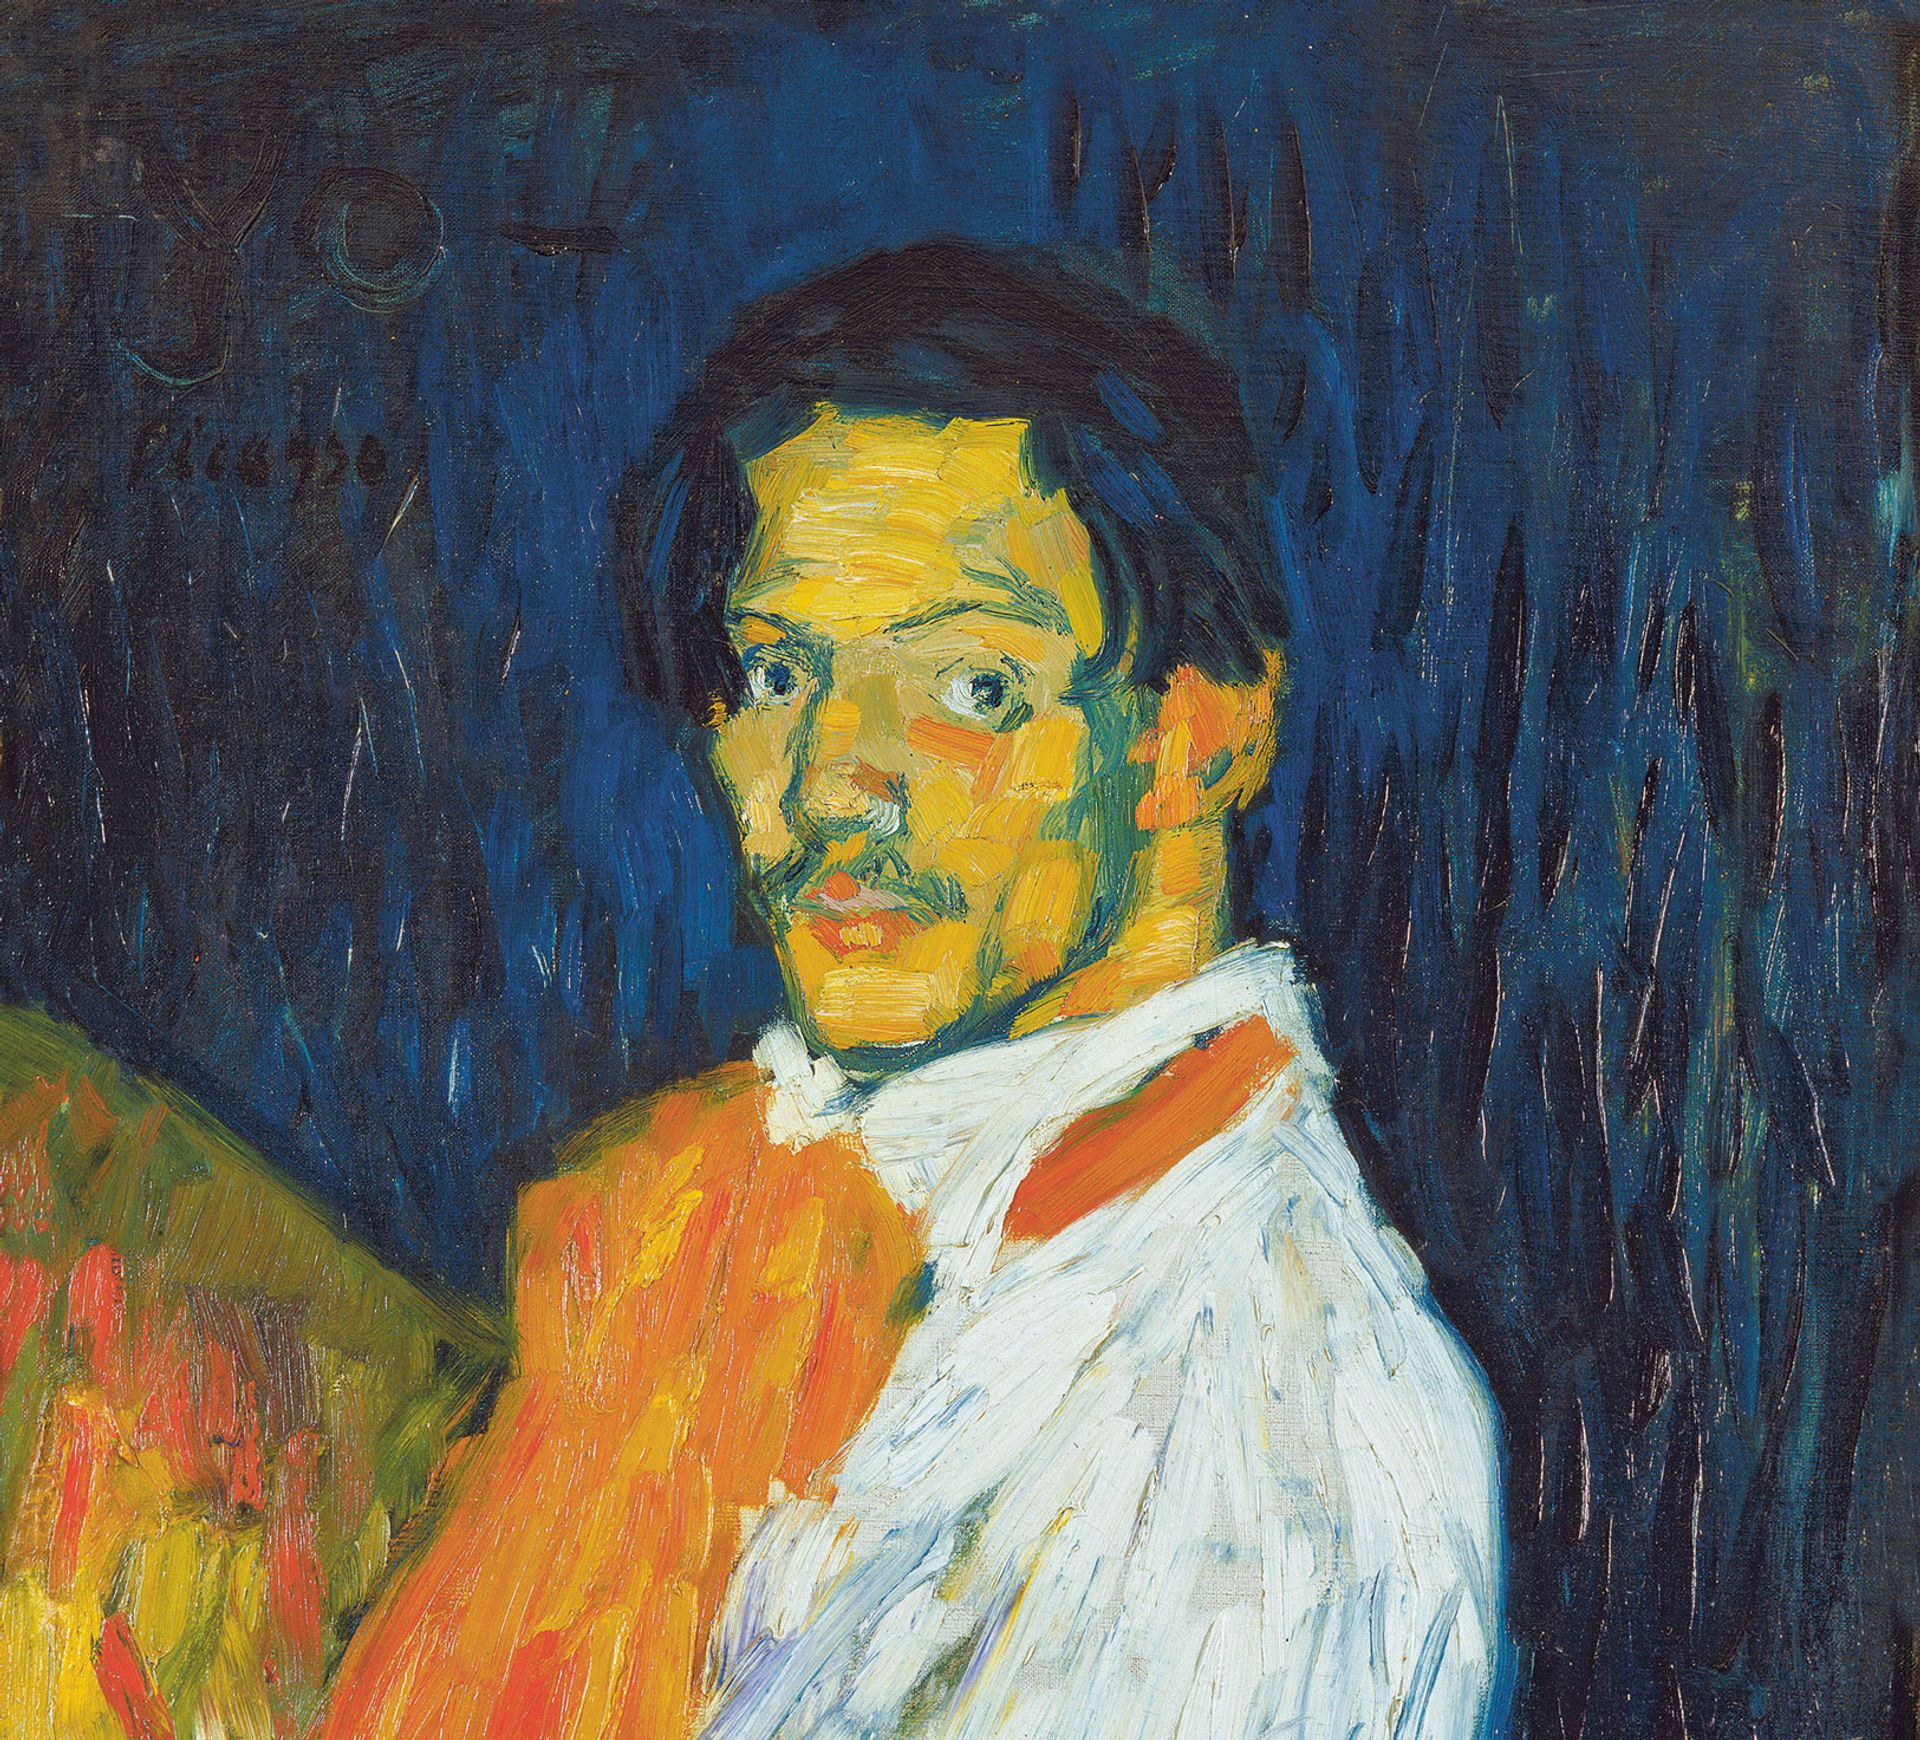 Yo Picasso (detail, 1901) from the Beyler show, which included works made by the artist between 1901 and 1907 © Succession Picasso/ProLitteris, Zürich; Image © Art Resource, New York/Scala, Florence